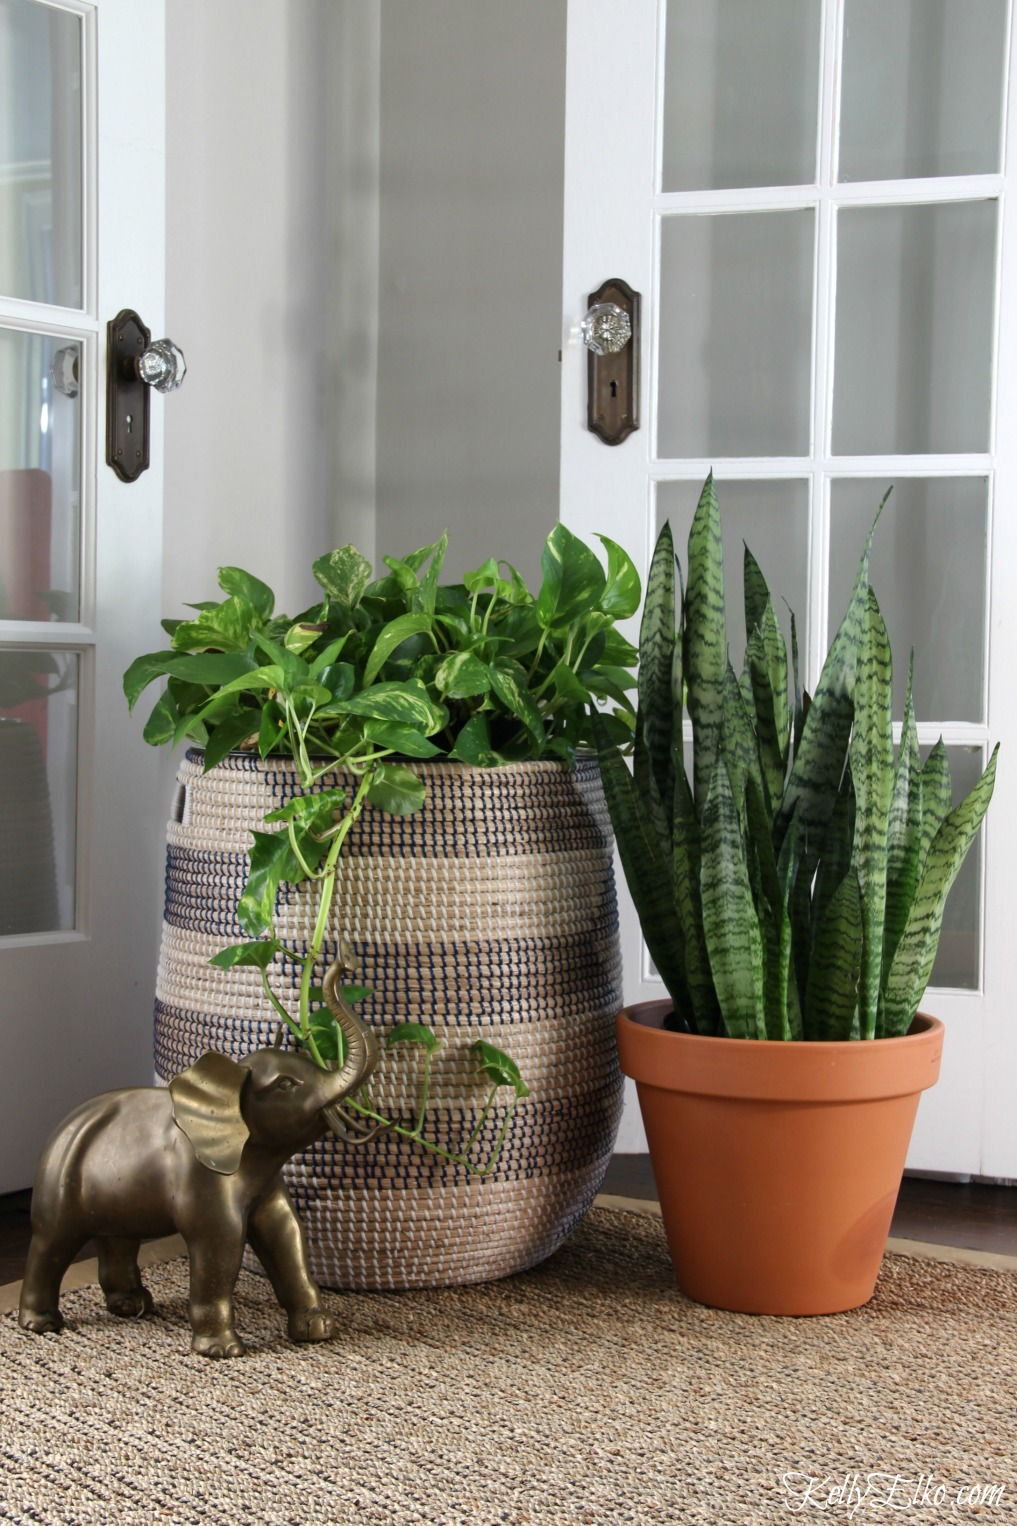 Pothos and snake plants are low maintenance and add life to this living room kellyelko.com